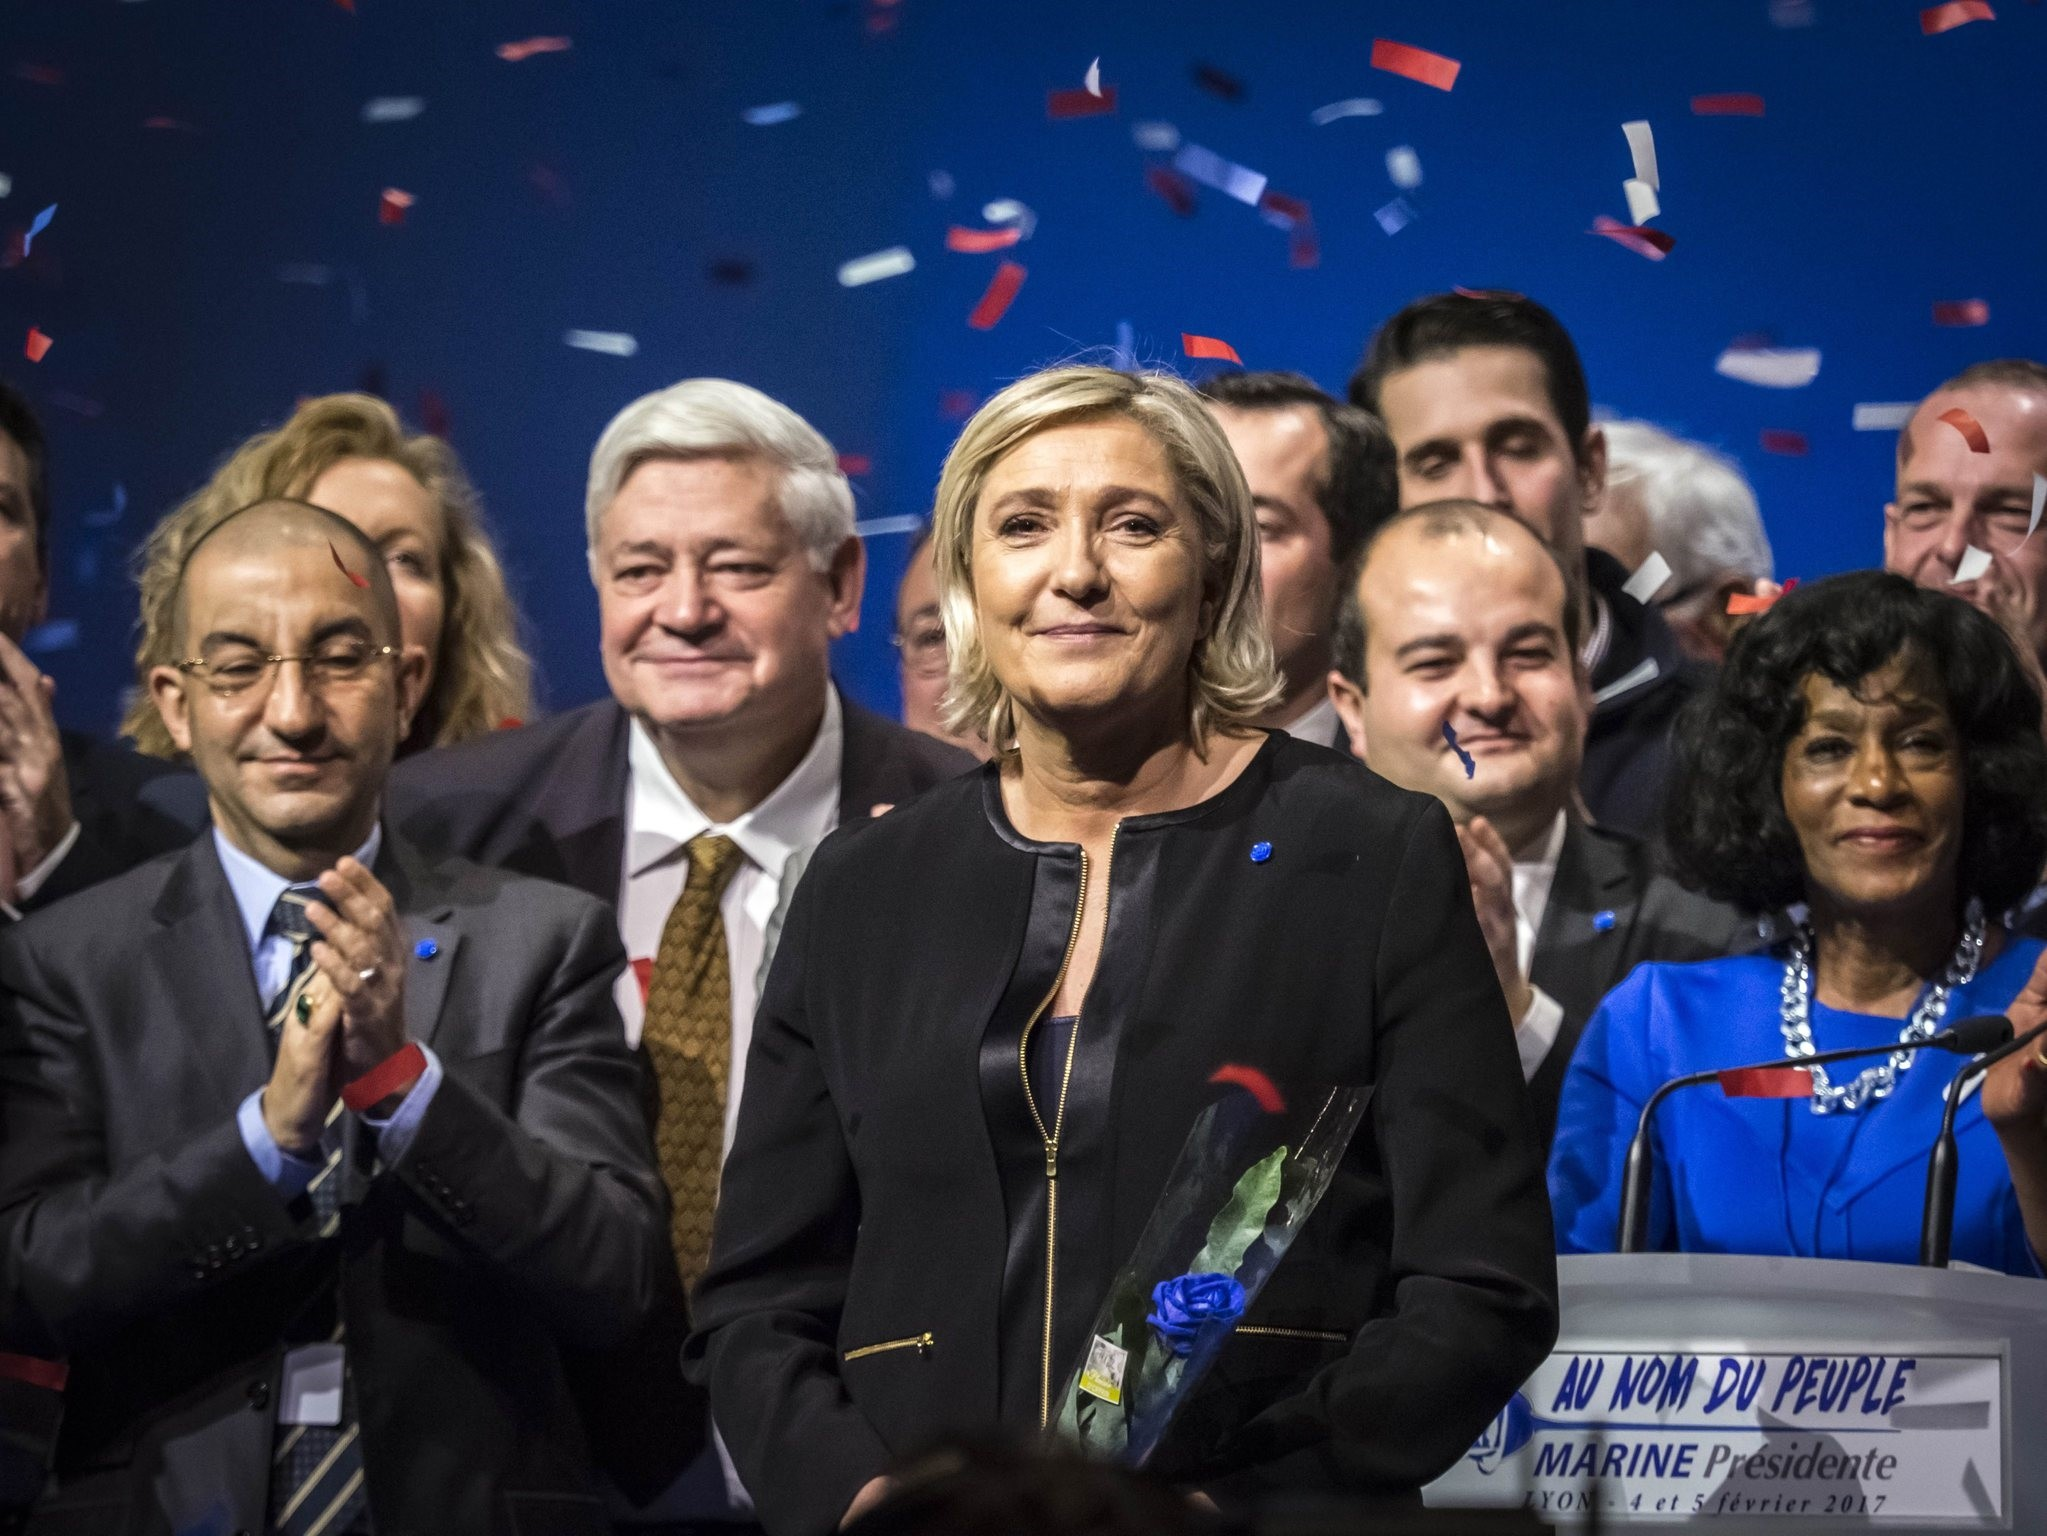 Leader of France's far-right Front National political party and candidate for the 2017 French presidential elections Marine Le Pen (C). (EPA Photo)